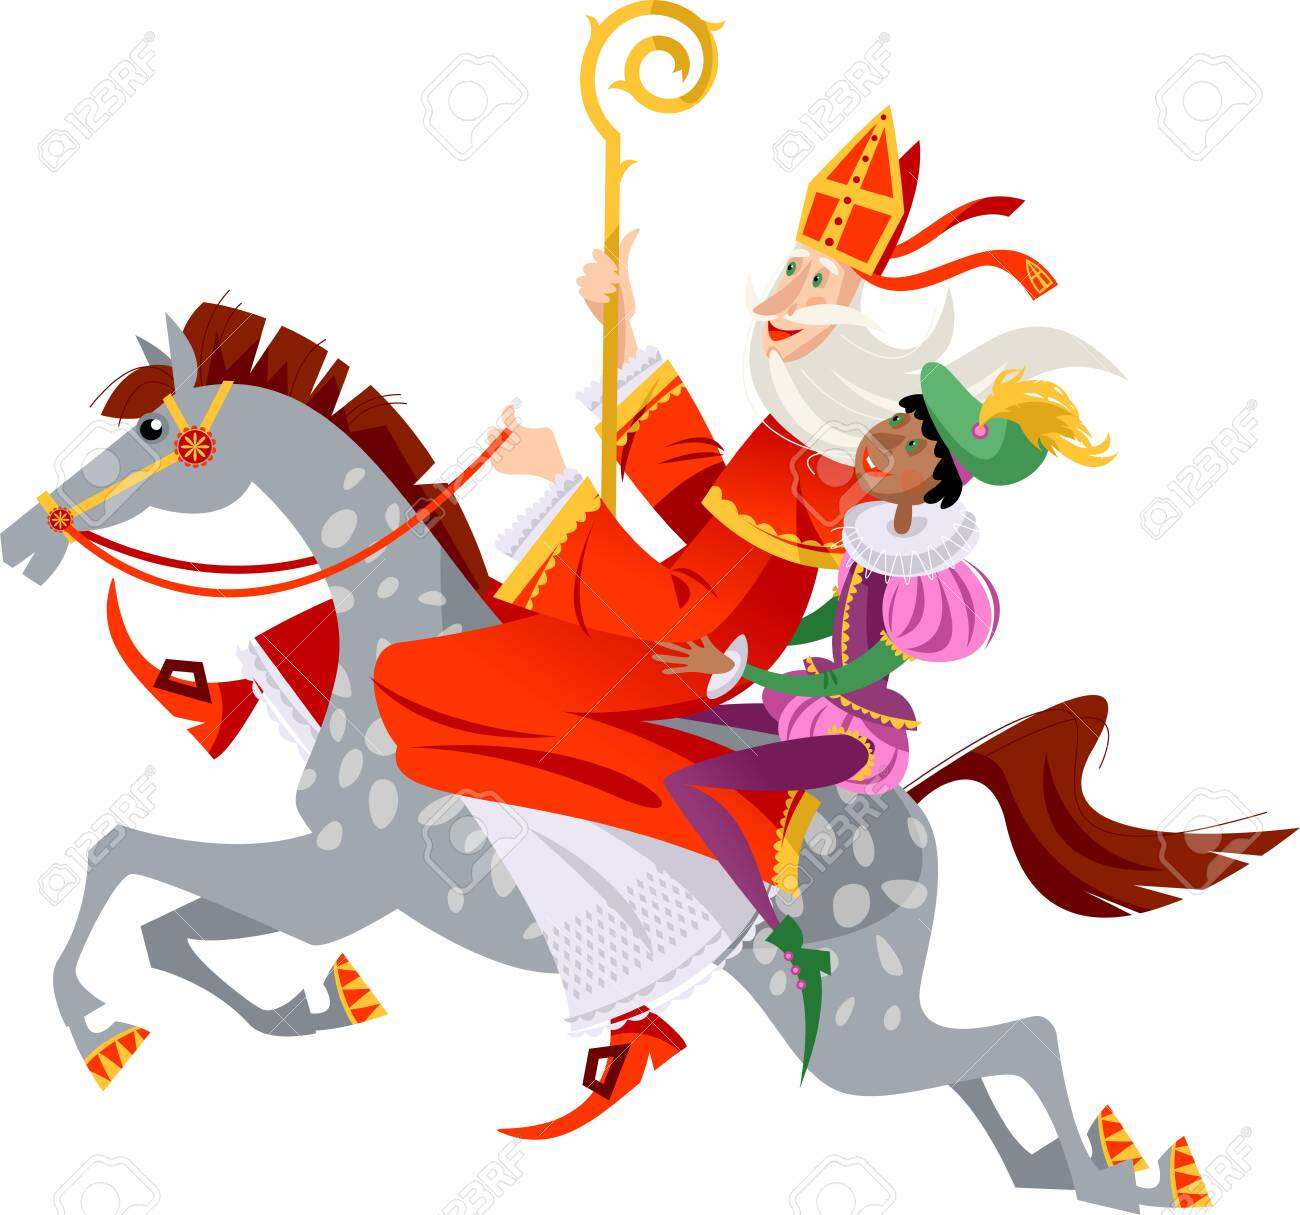 Santa Claus (Sinterklaas) and his helper ride a horse to deliver gifts. Christmas in Holland. Vector illustration. - 131973796